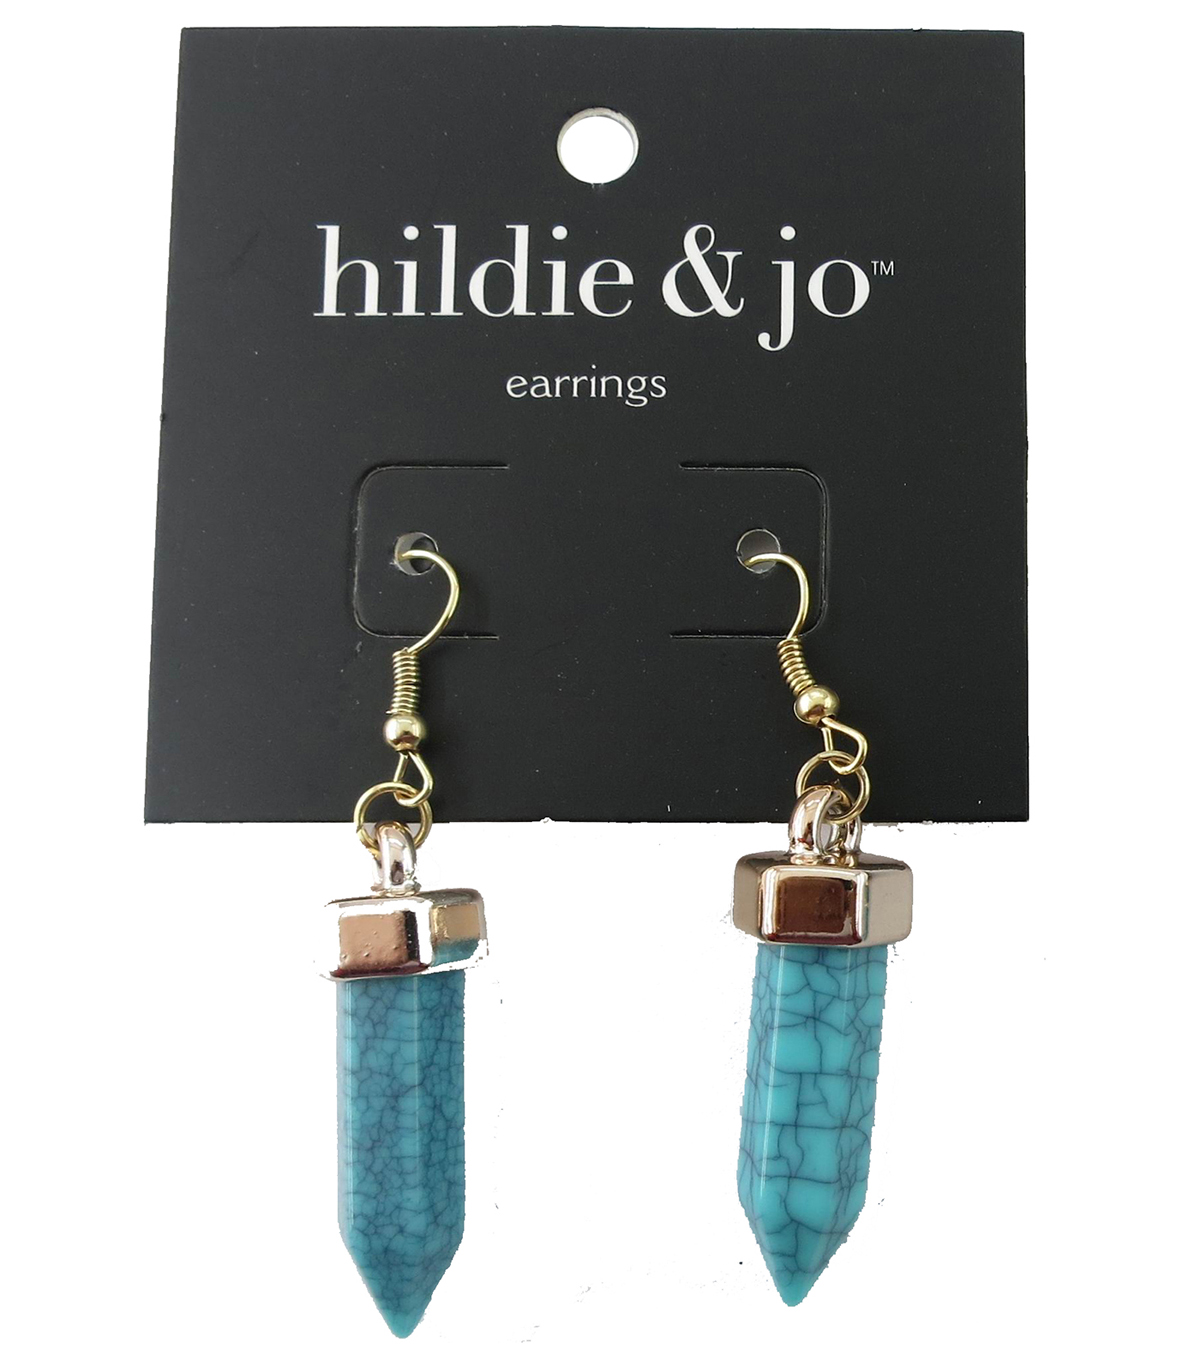 hildie & jo 1.38\u0027\u0027x0.38\u0027\u0027 Gold Spike Earrings-Turquoise Stone